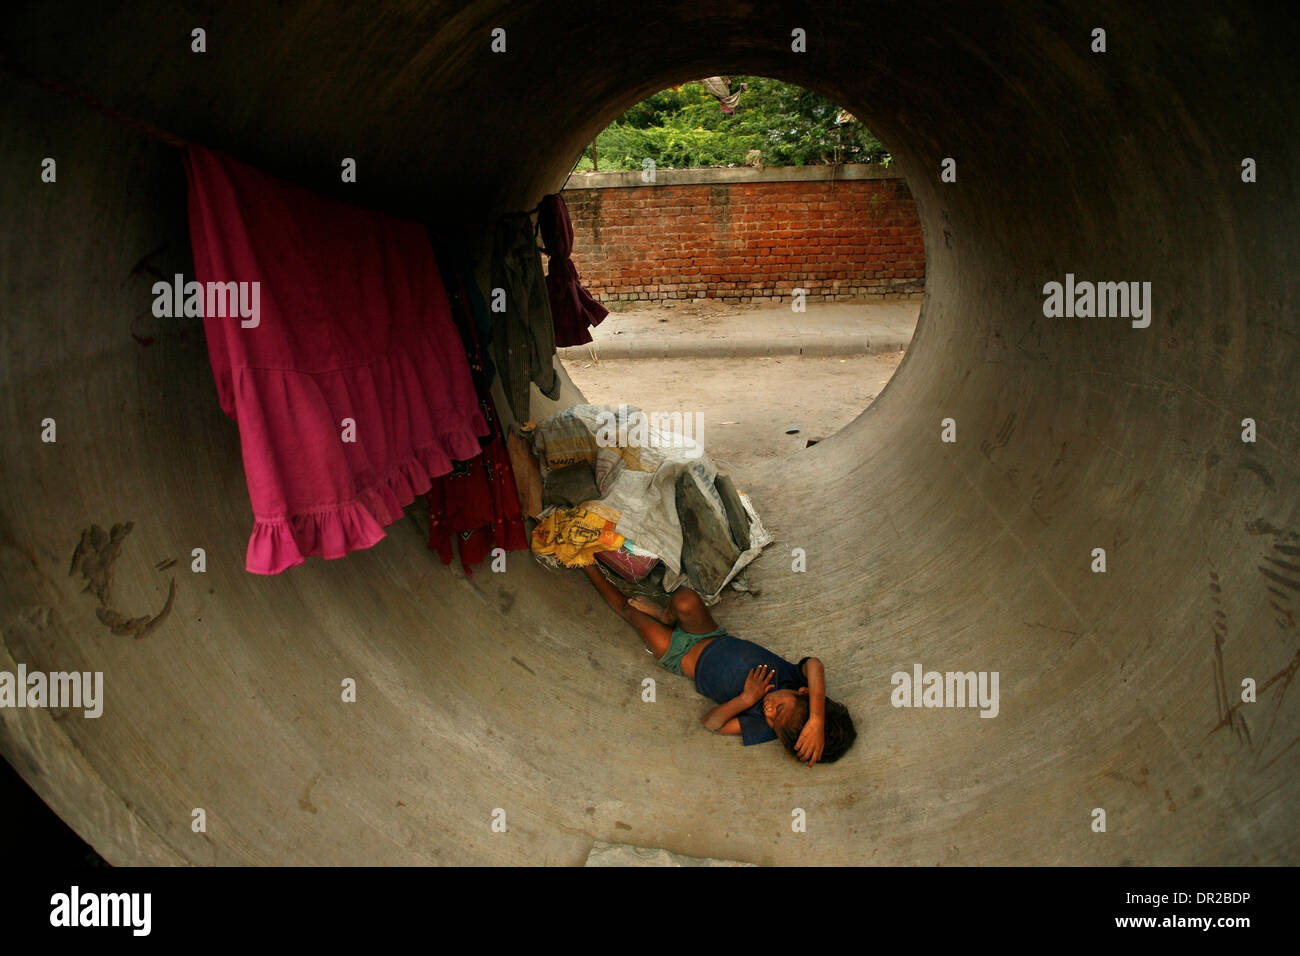 Jan. 12, 2009 - Amhedabad, India - A young boy sleeps in a concrete pipes on the side of the road in Amhedabad. Stock Photo